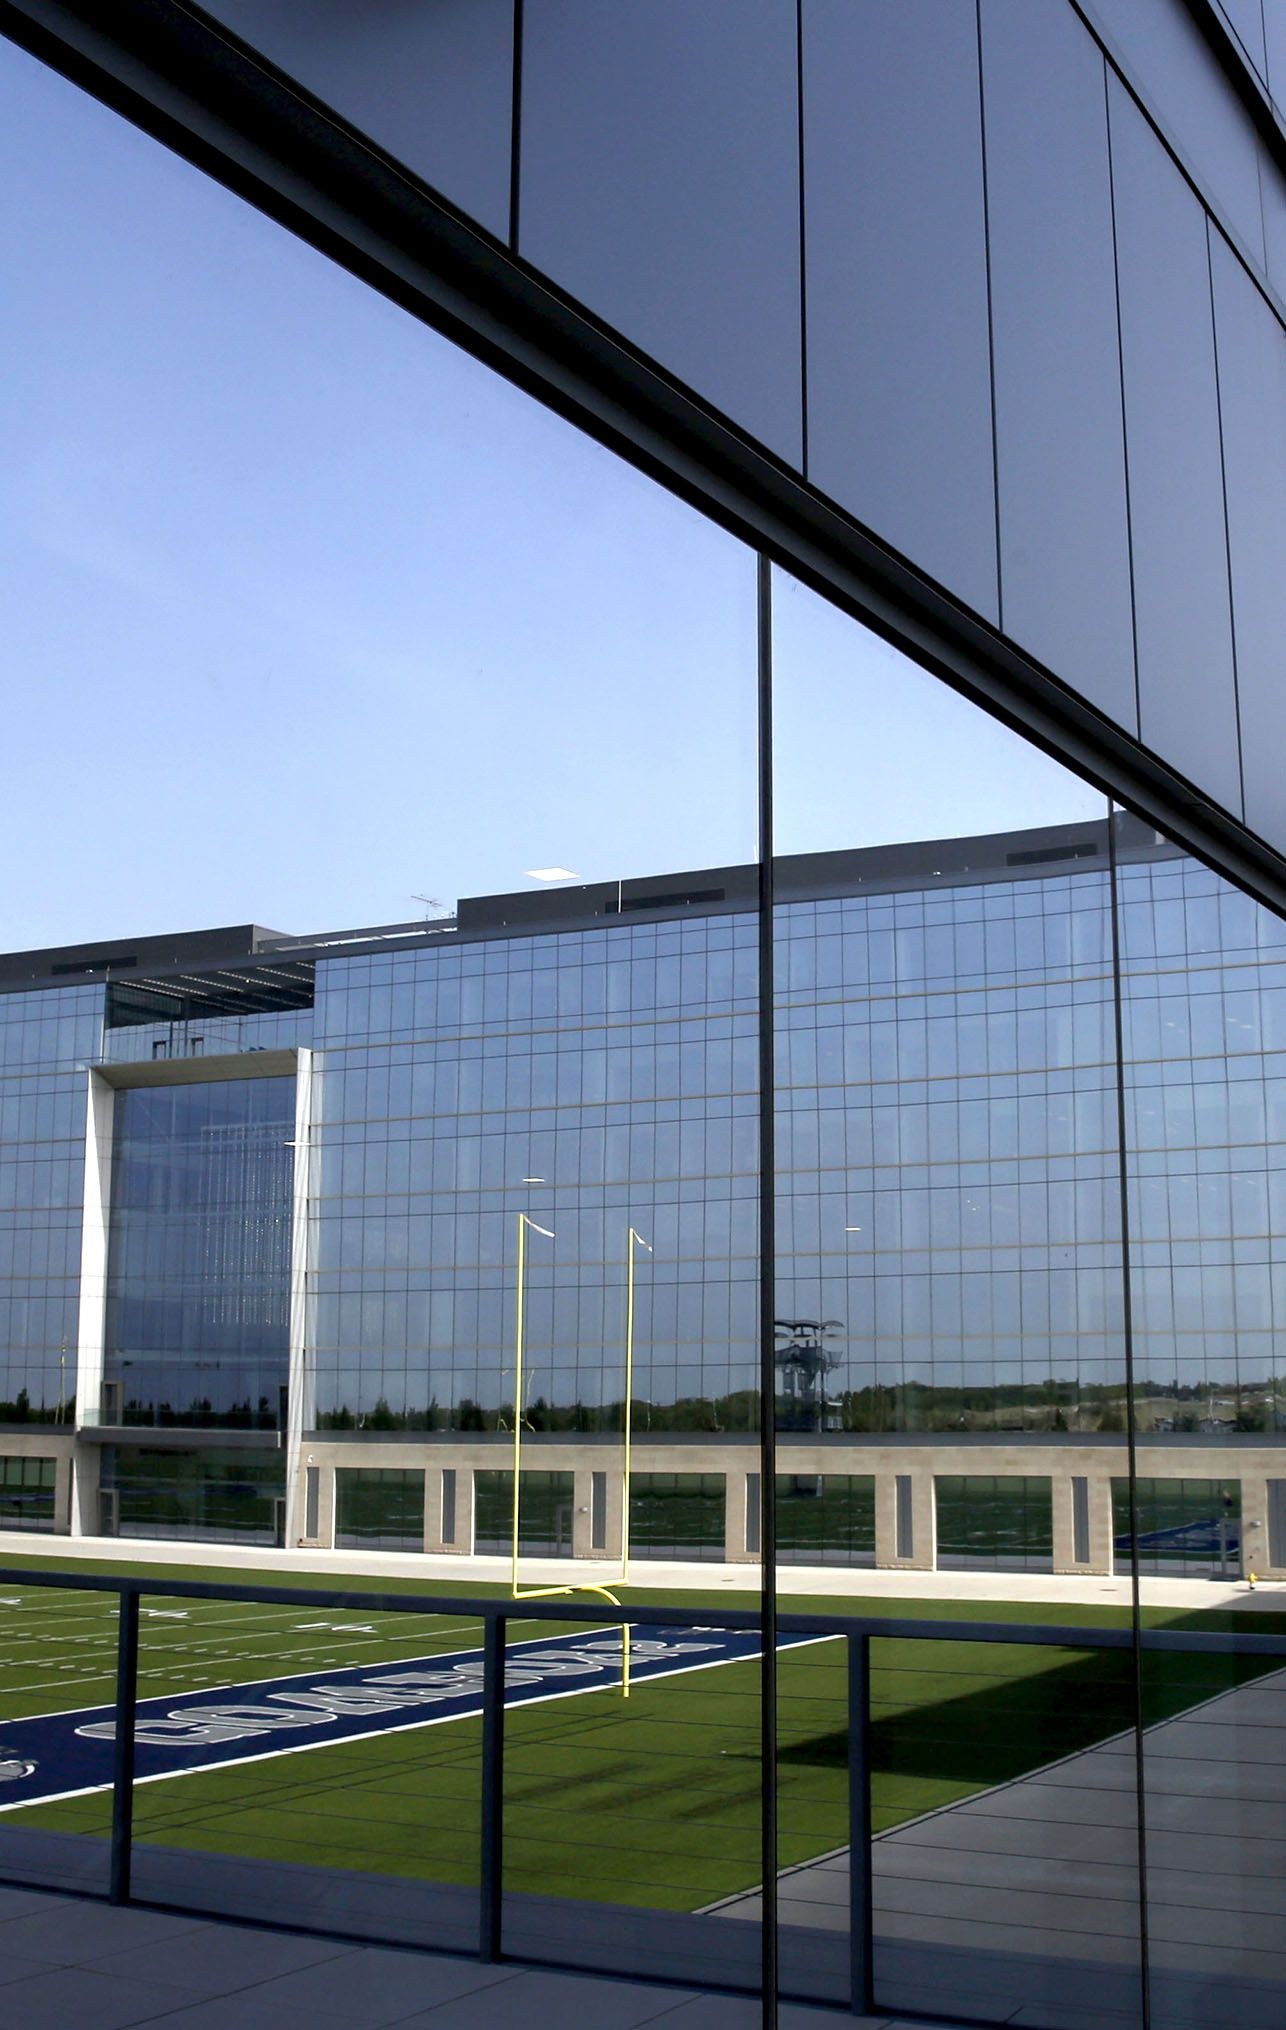 An outdoor practice field is reflected in the glass of the Dallas Cowboys headquarters building, at The Star in Frisco, Texas on July 17, 2018.